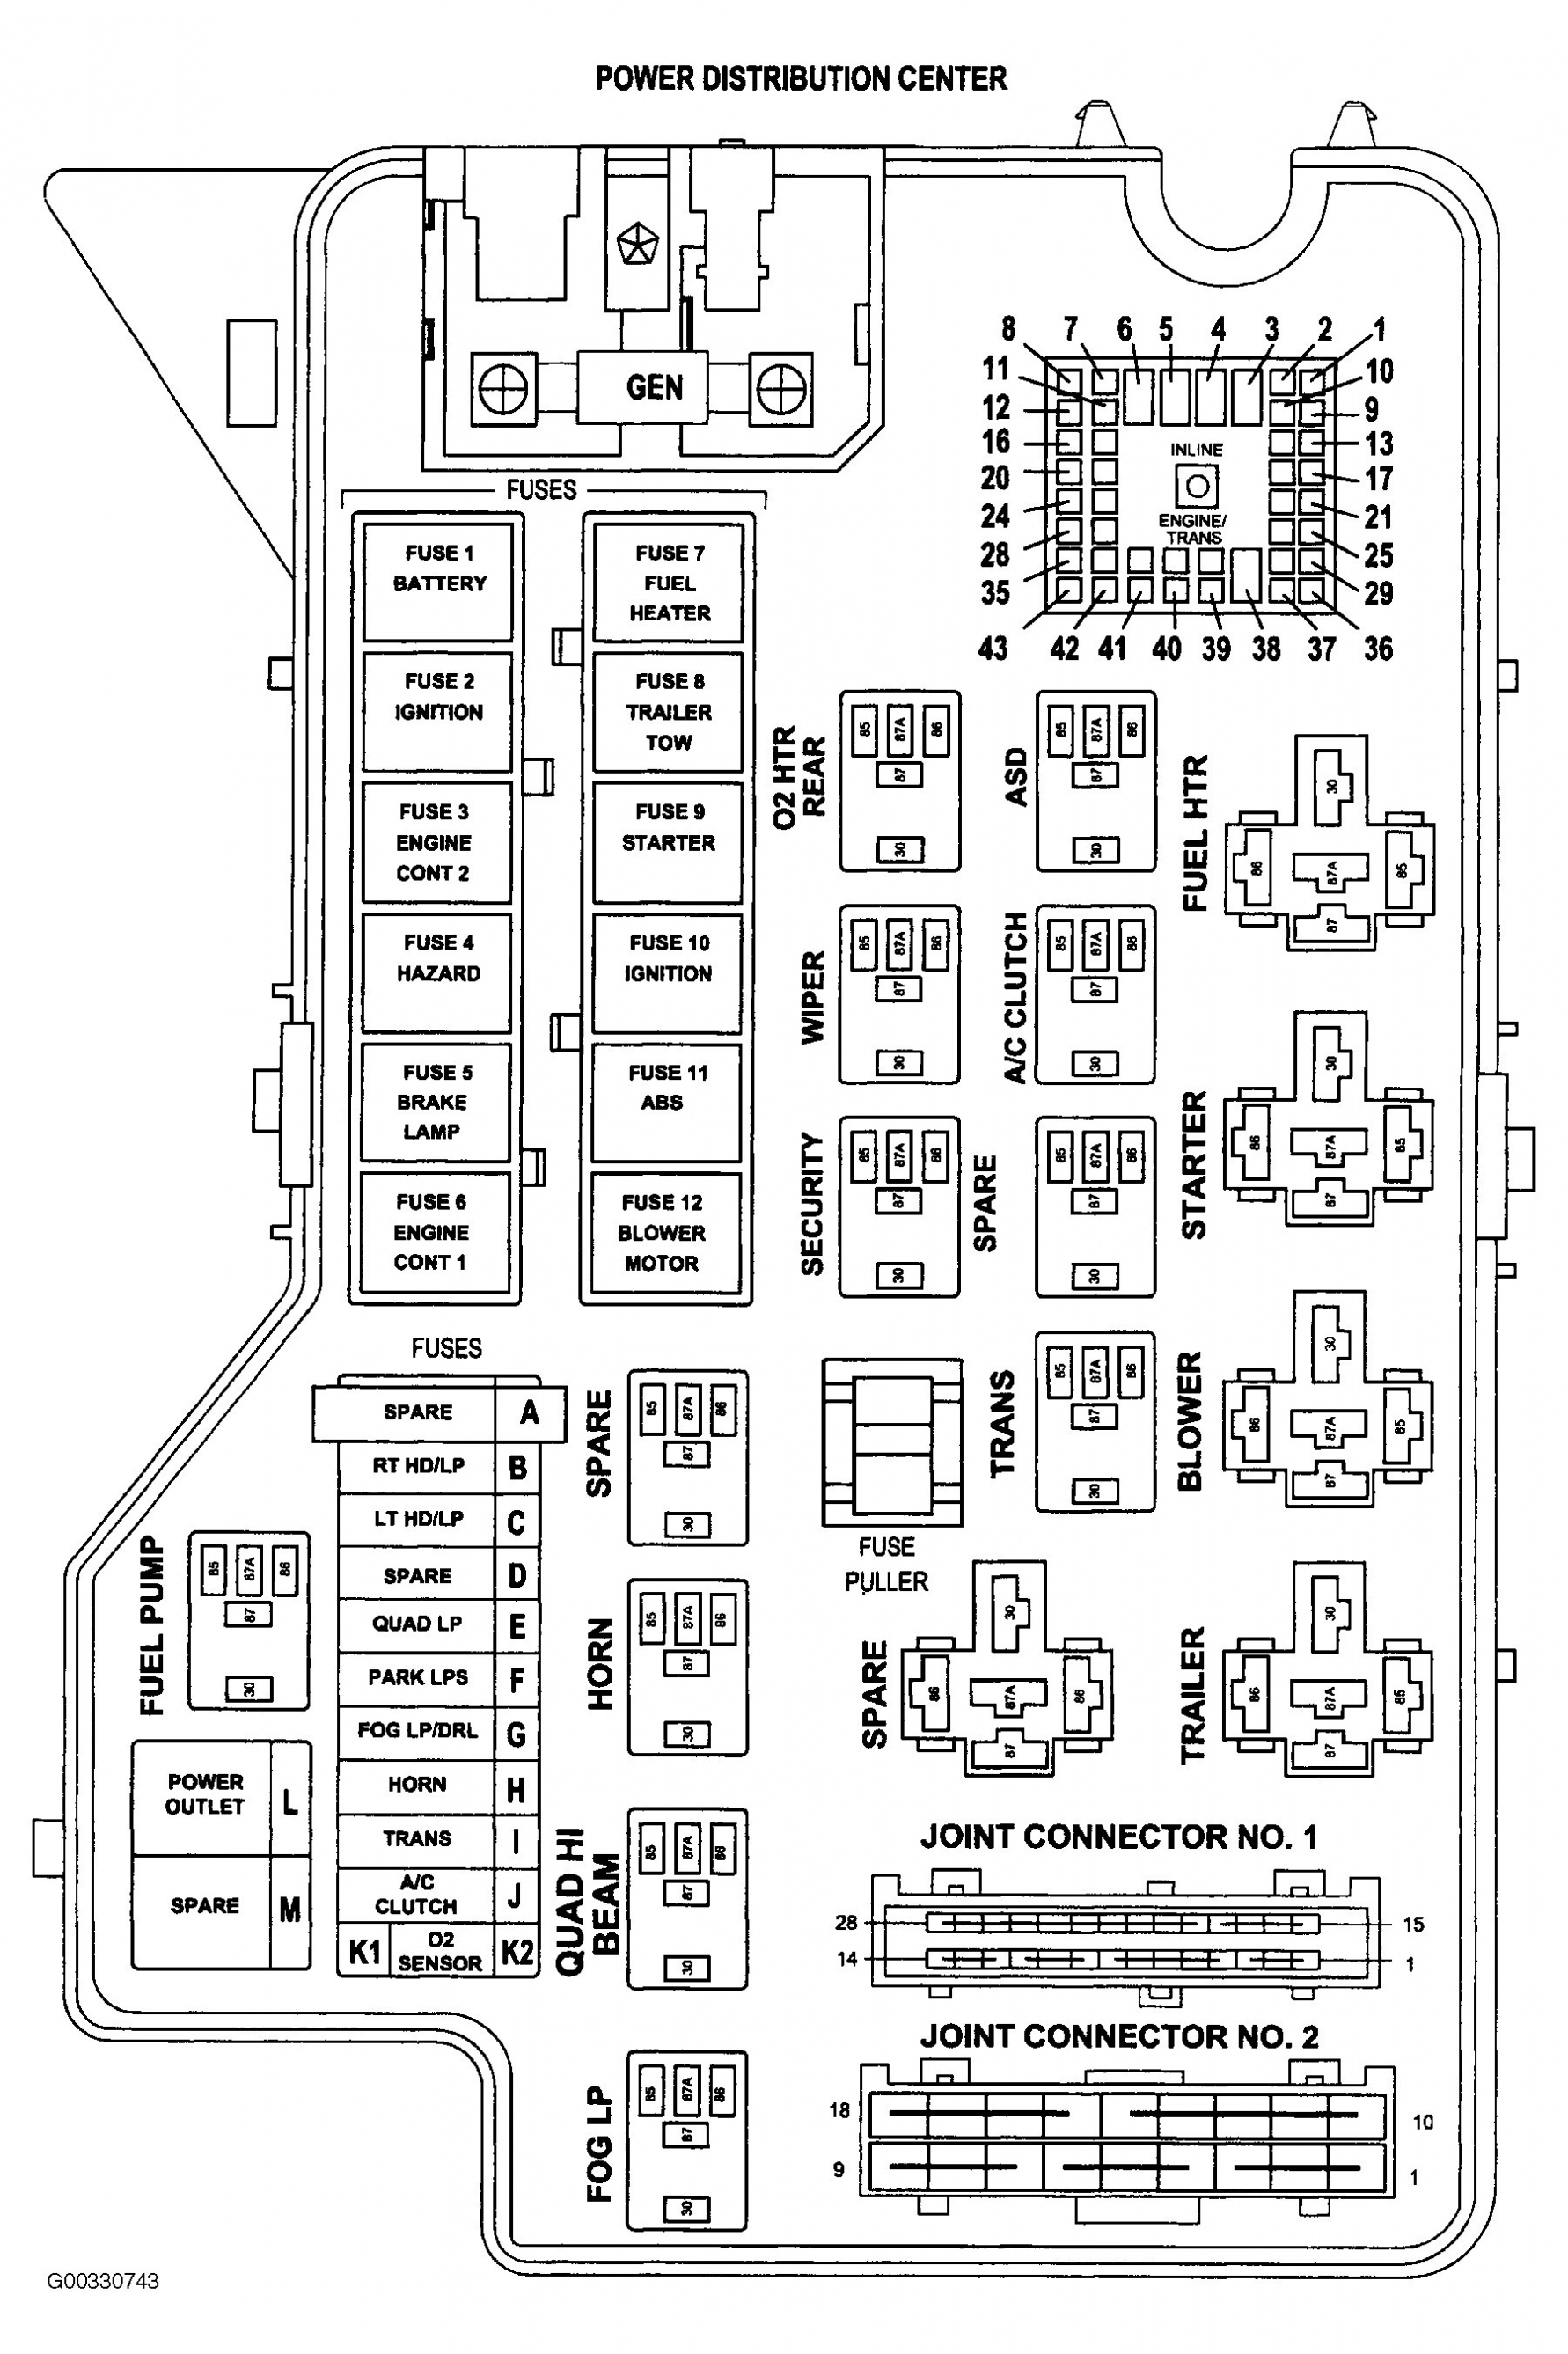 2015 Ram 1500 Fuse Box Diagram - Wiring Diagram - 2014 Dodge Ram Wiring Diagram